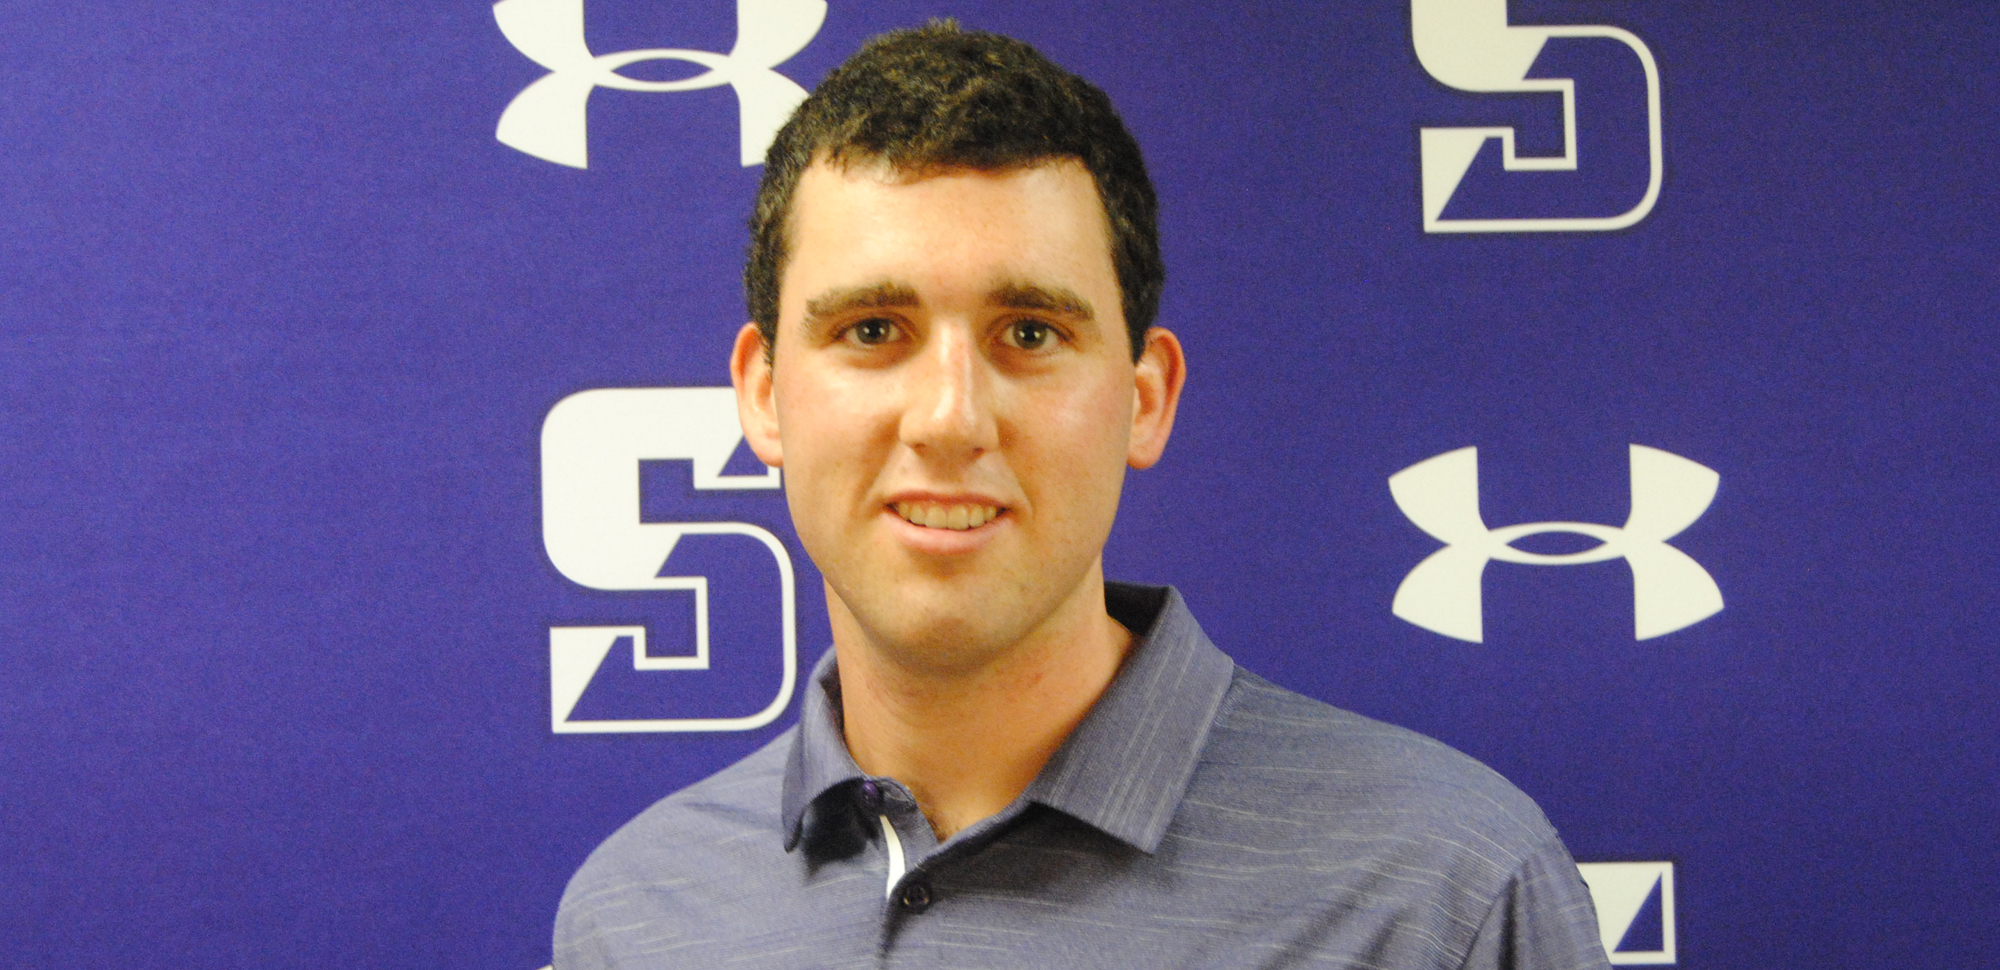 Junior Colin Sommers was named The University of Scranton Athlete of the Week for the first time in his career on Monday after he led the Royals to a win over Marywood on Thursday after posting a career-low score of 75.